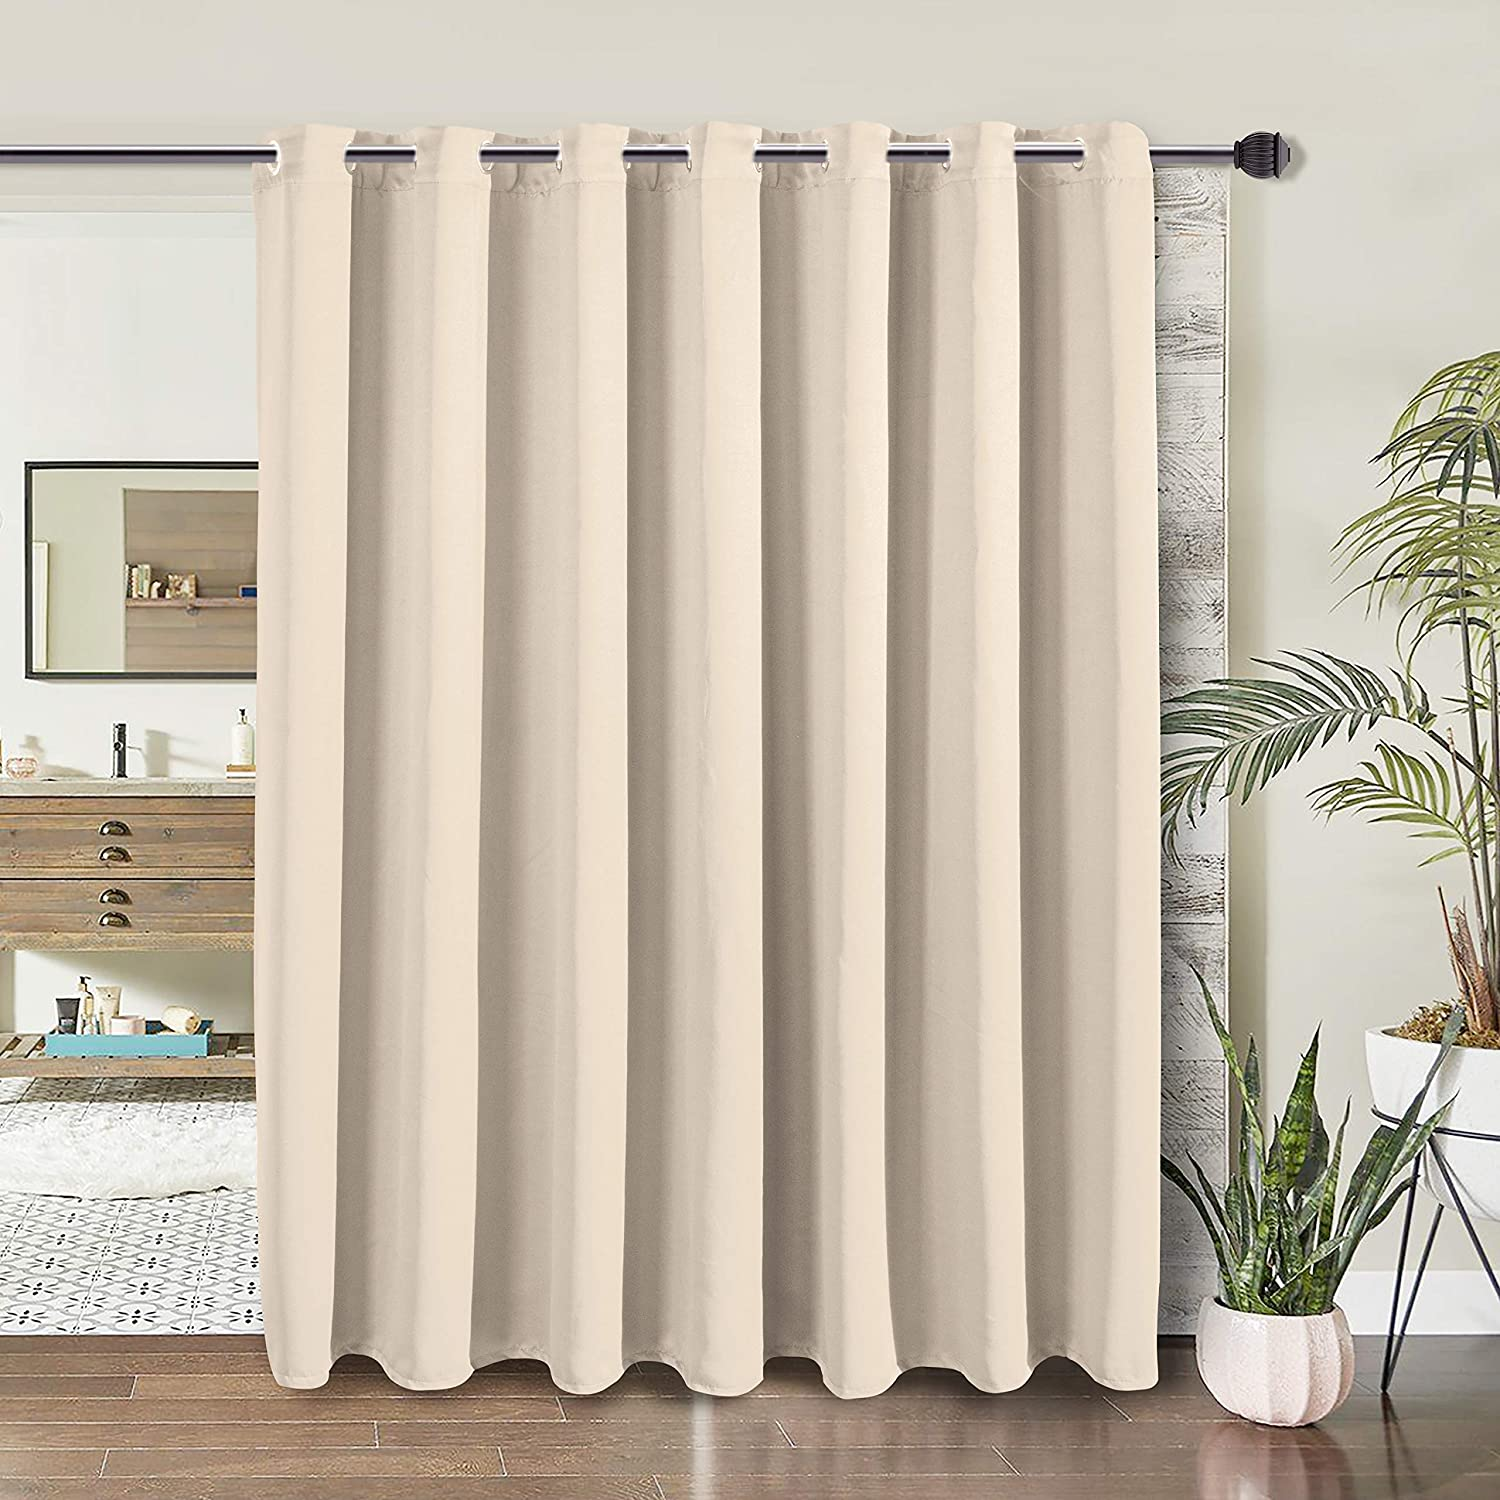 wontex room divider curtain privacy blackout curtains for bedroom partition living room and shared office thermal insulated grommet curtain panel